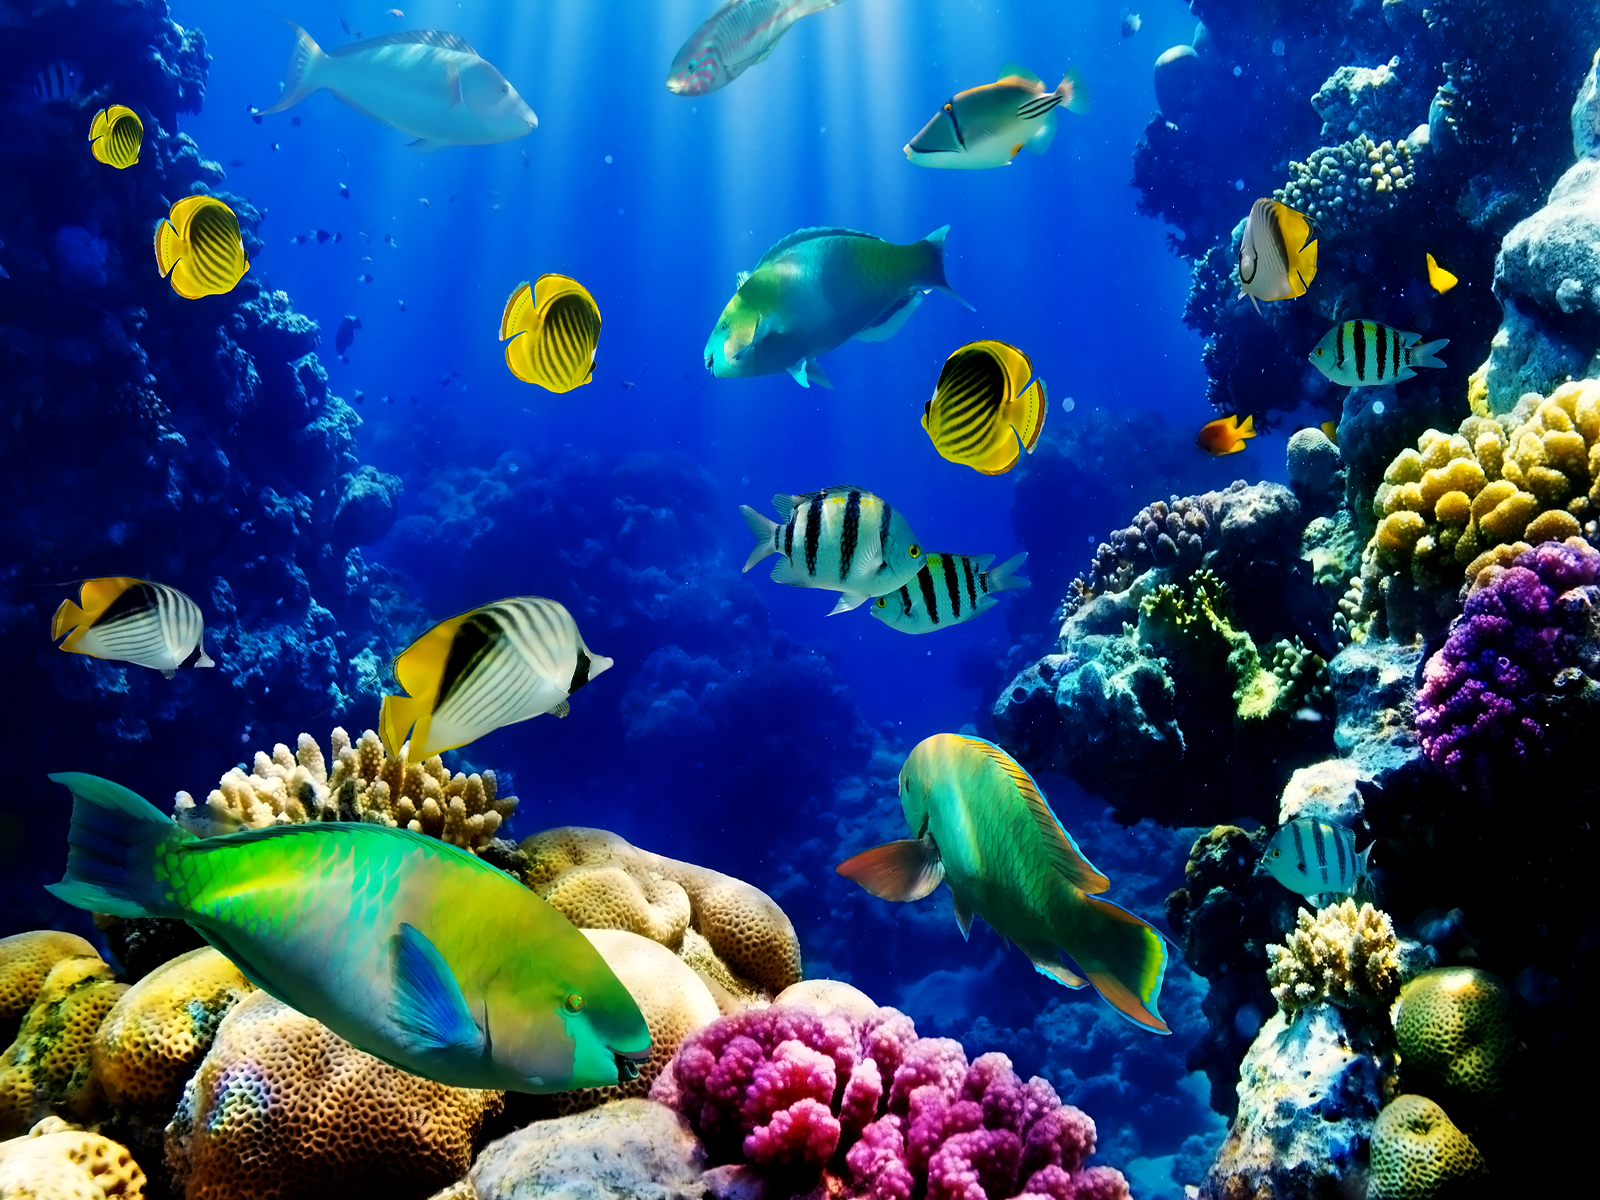 Free live moving fish wallpaper wallpapersafari for Desktop fish tank